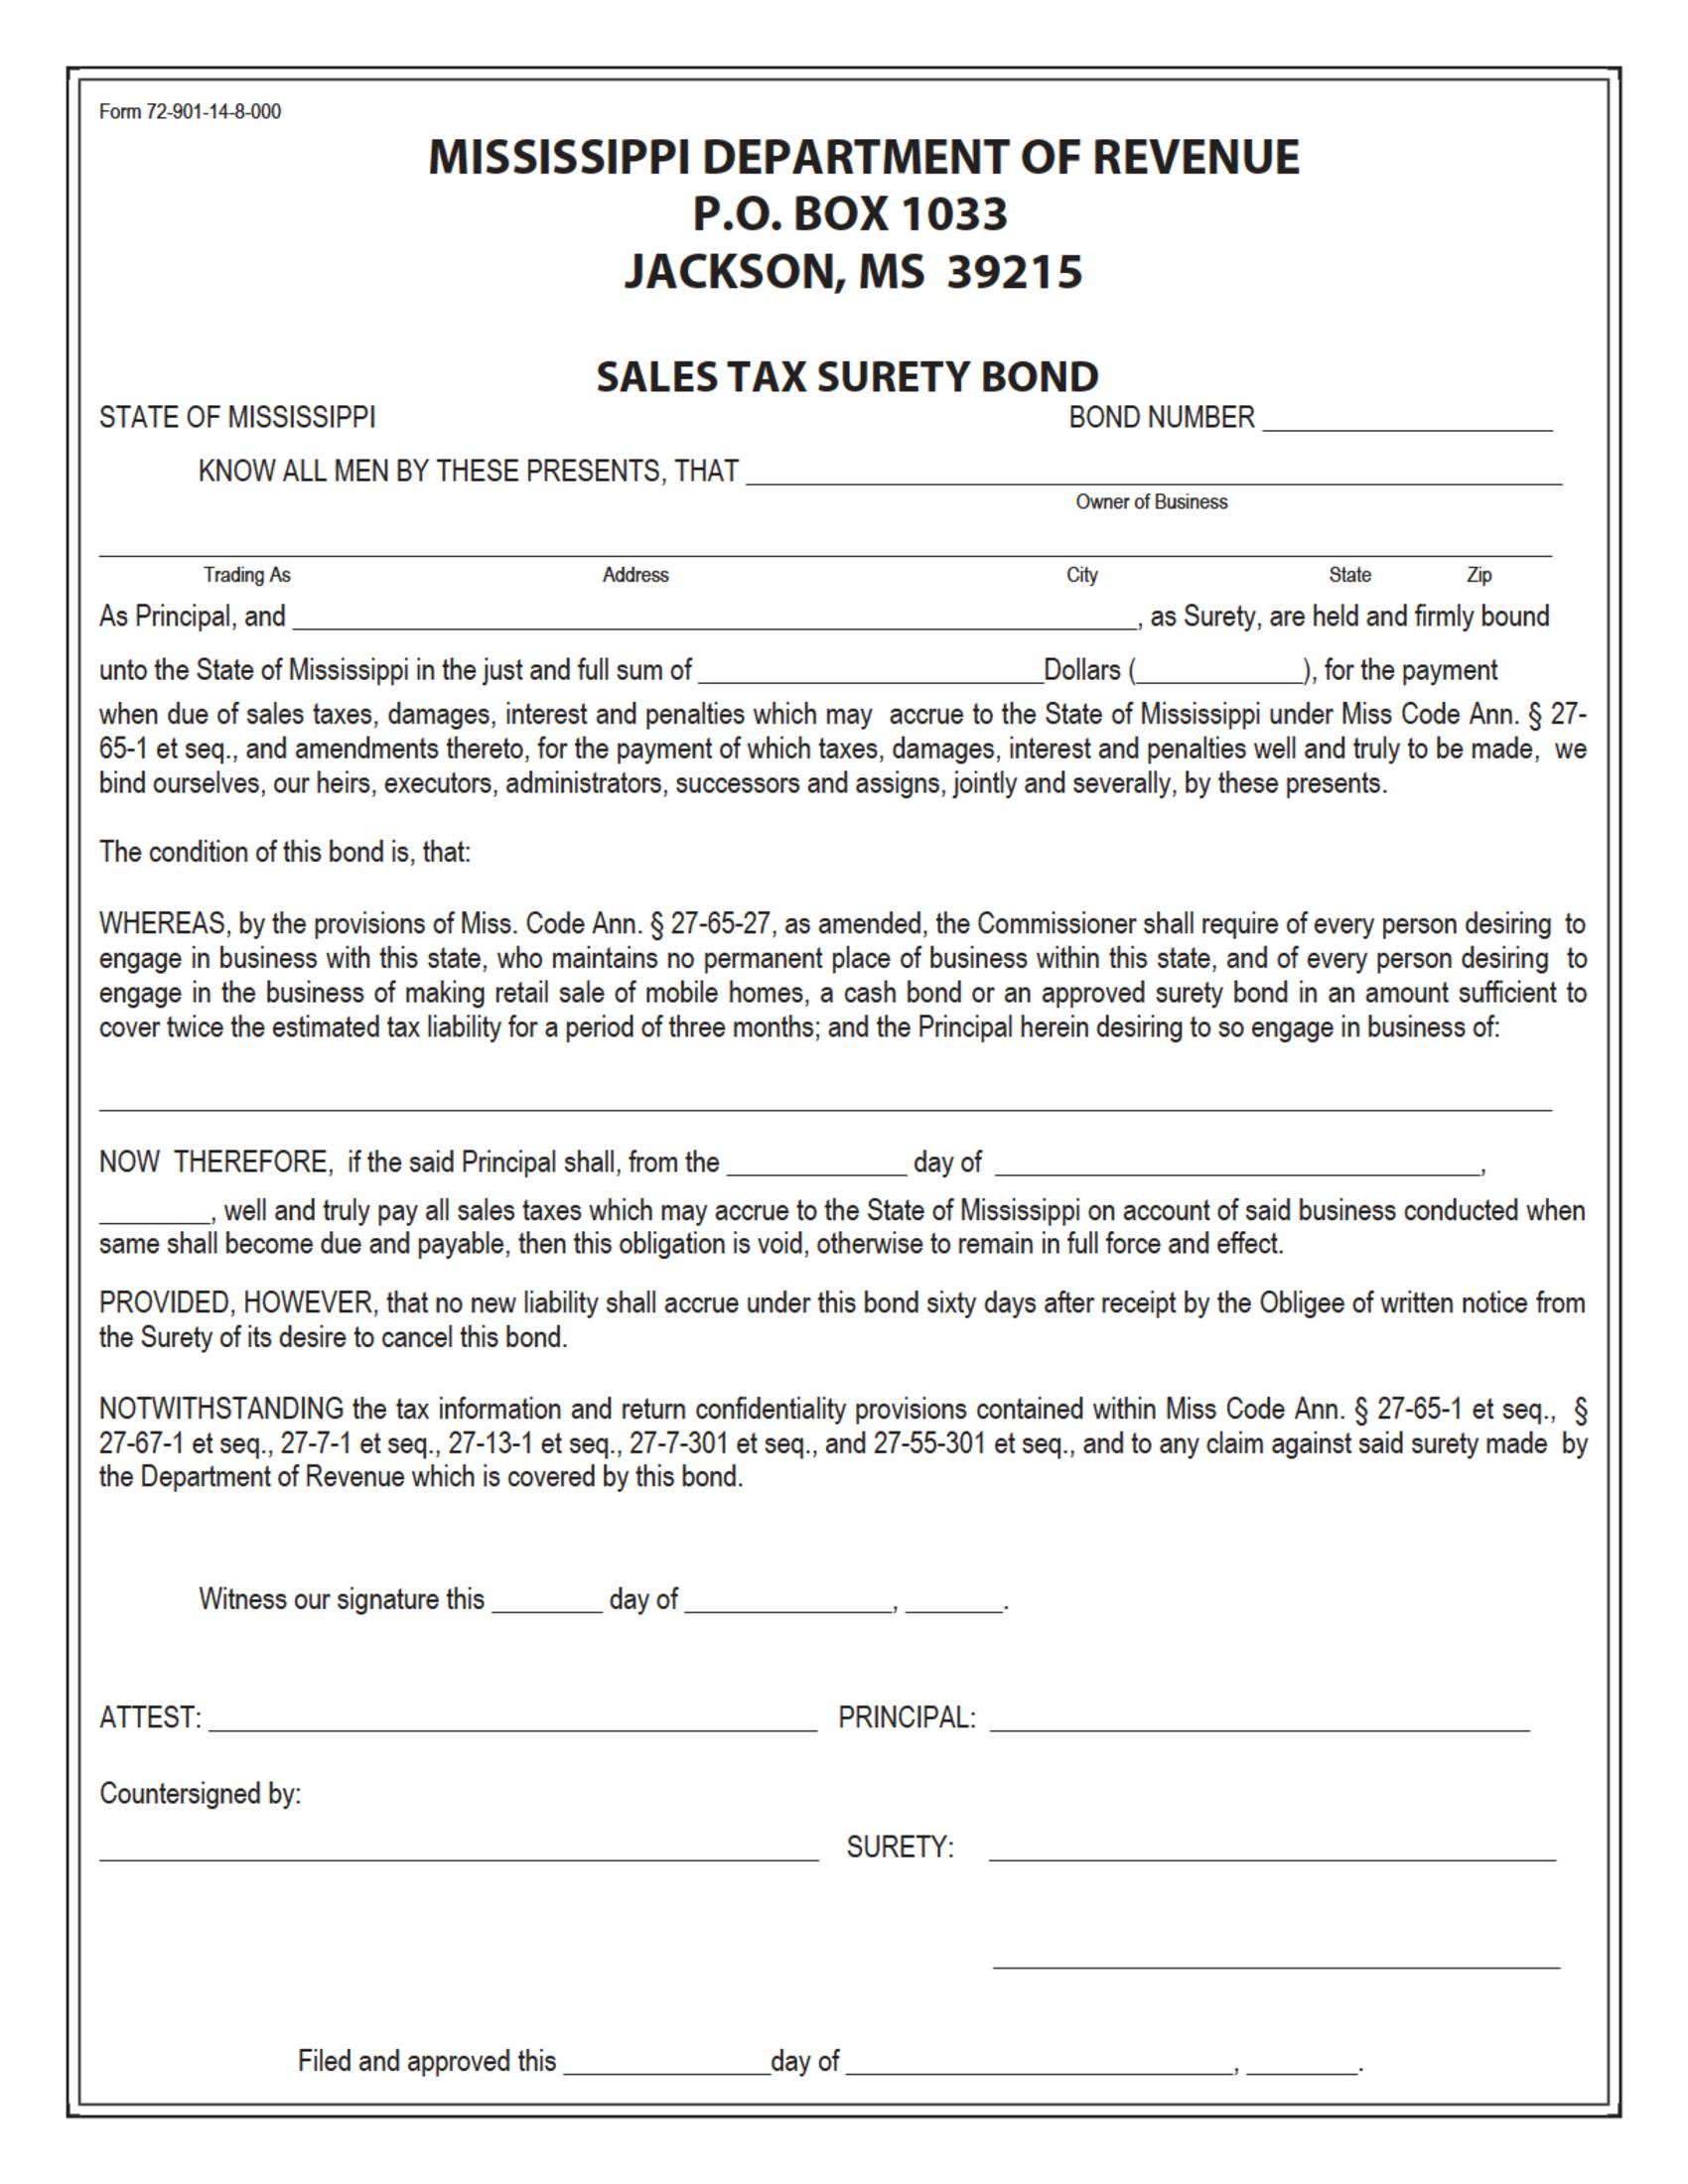 State of Mississippi Sales Tax: Non-Resident Business / Sales Tax: Retail Sales Bond sample image